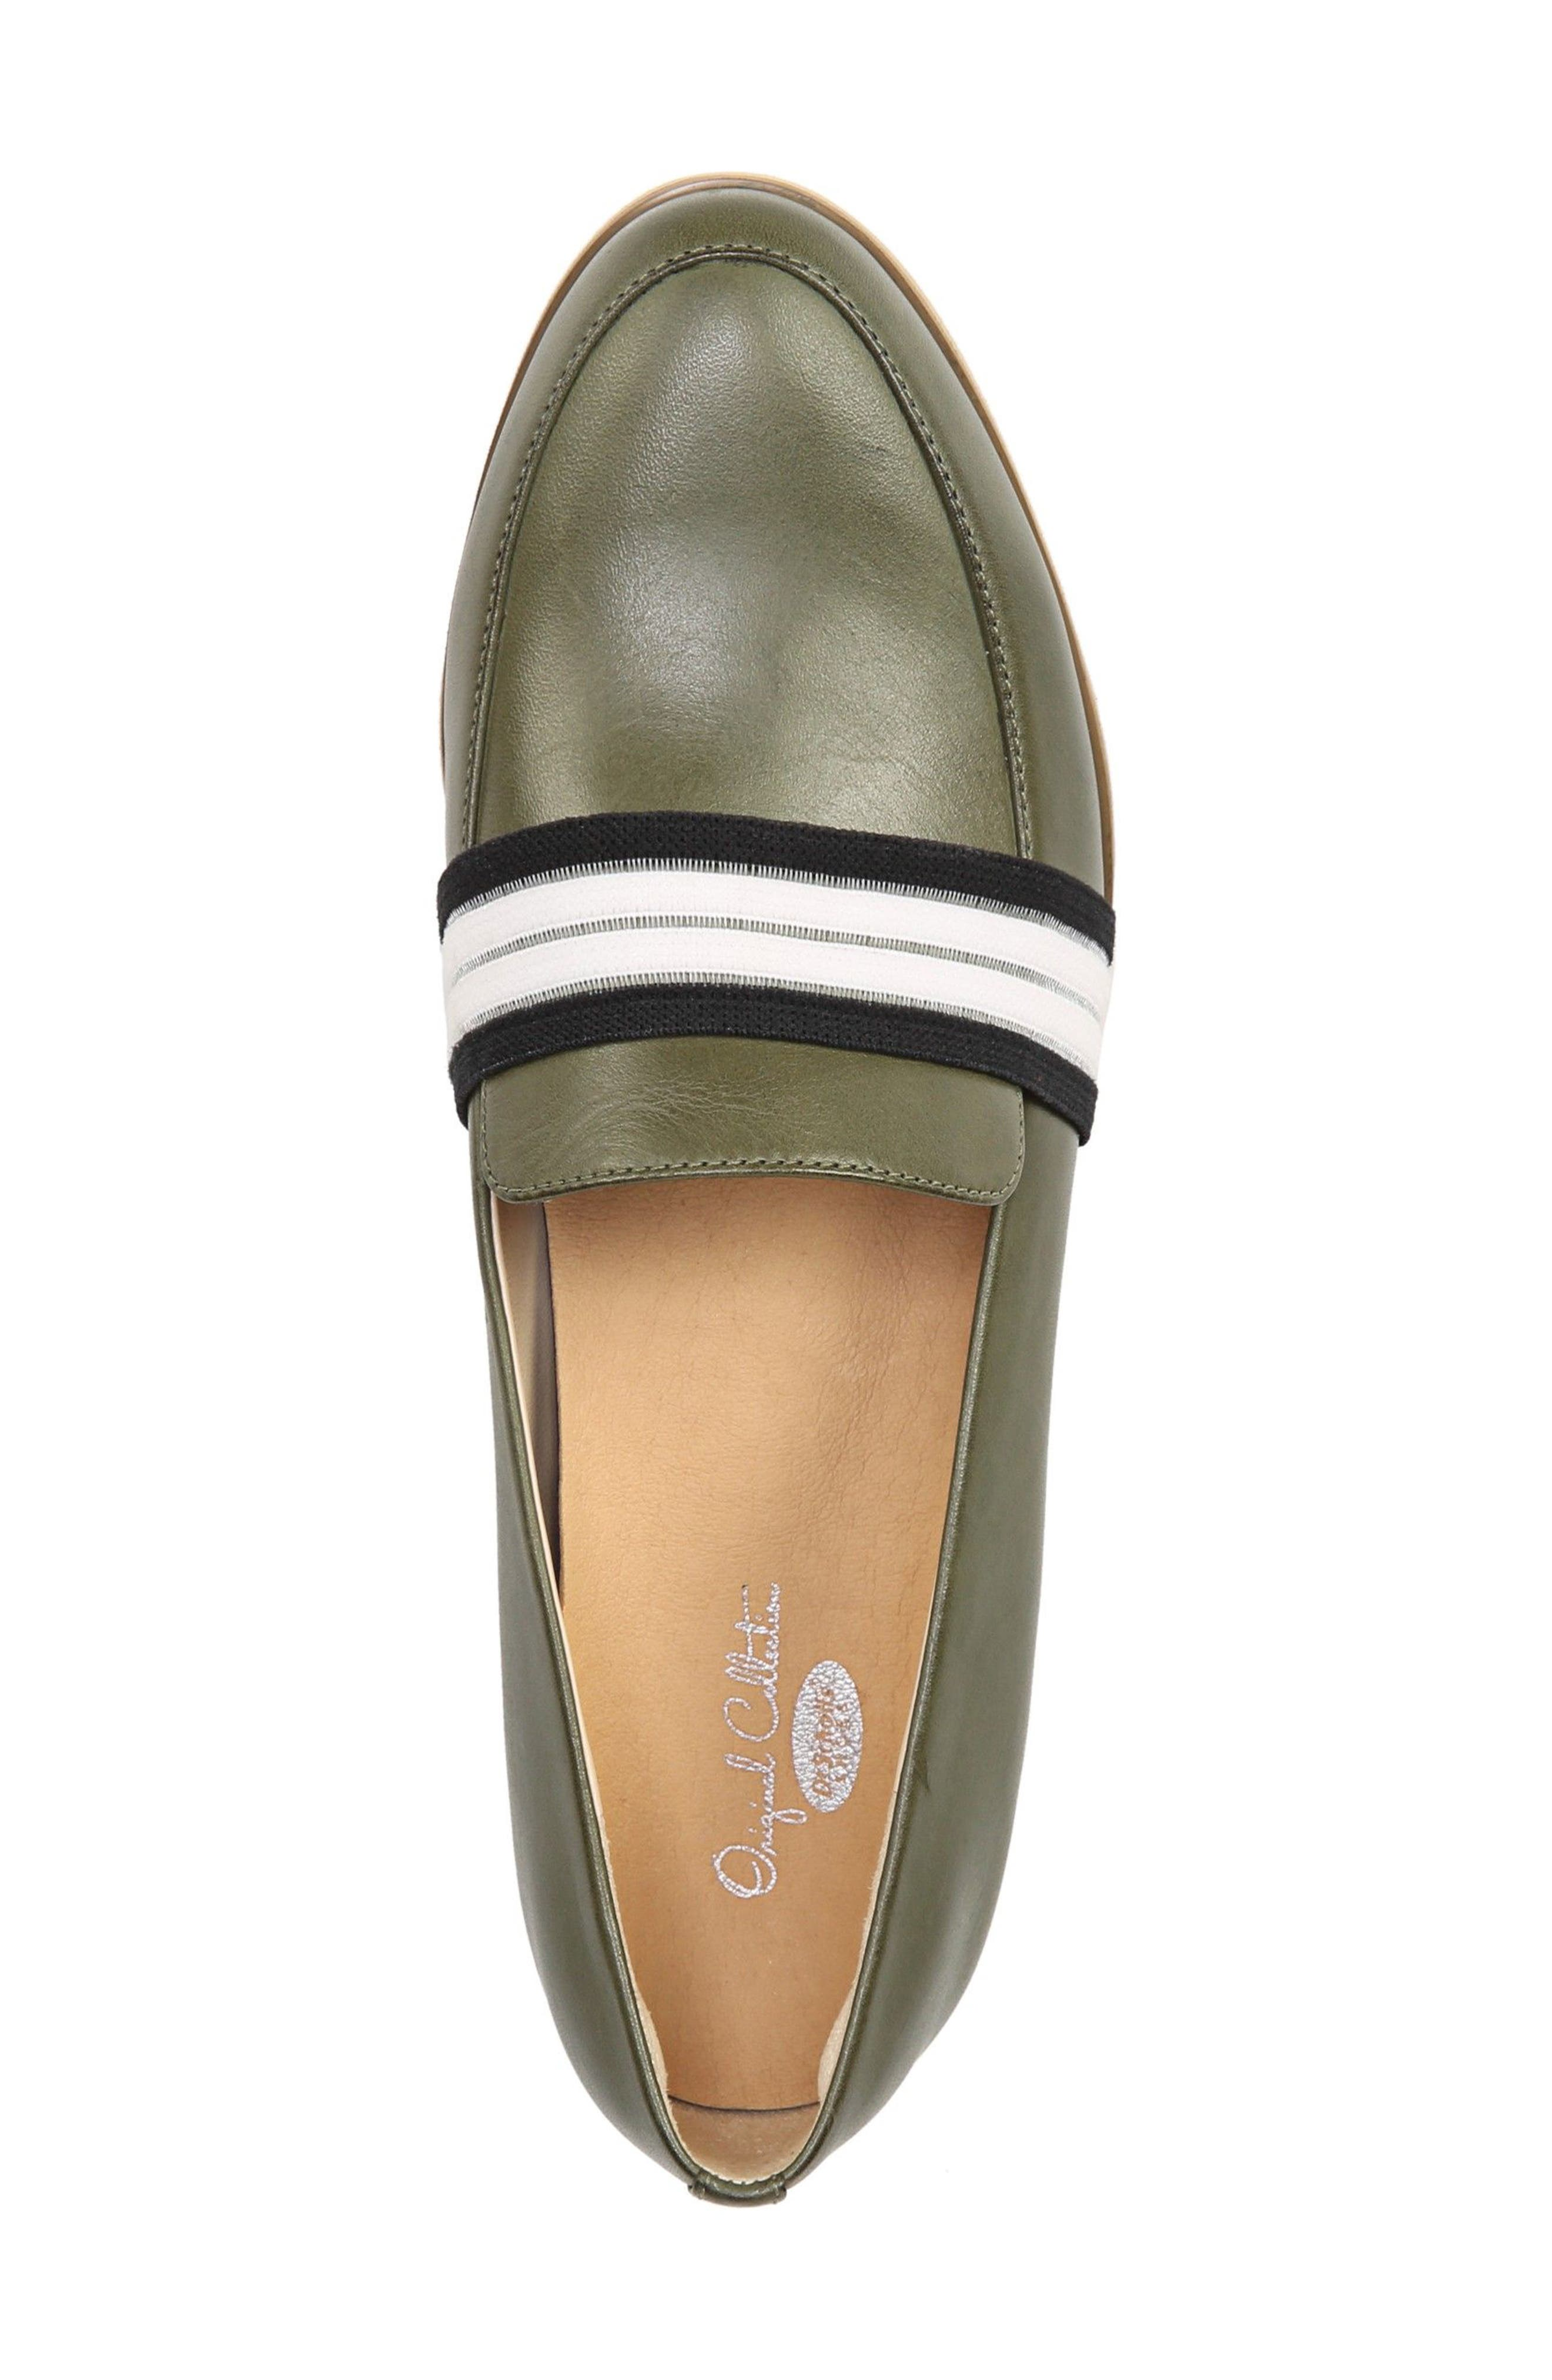 Everett Band Loafer,                             Alternate thumbnail 5, color,                             Green Leather